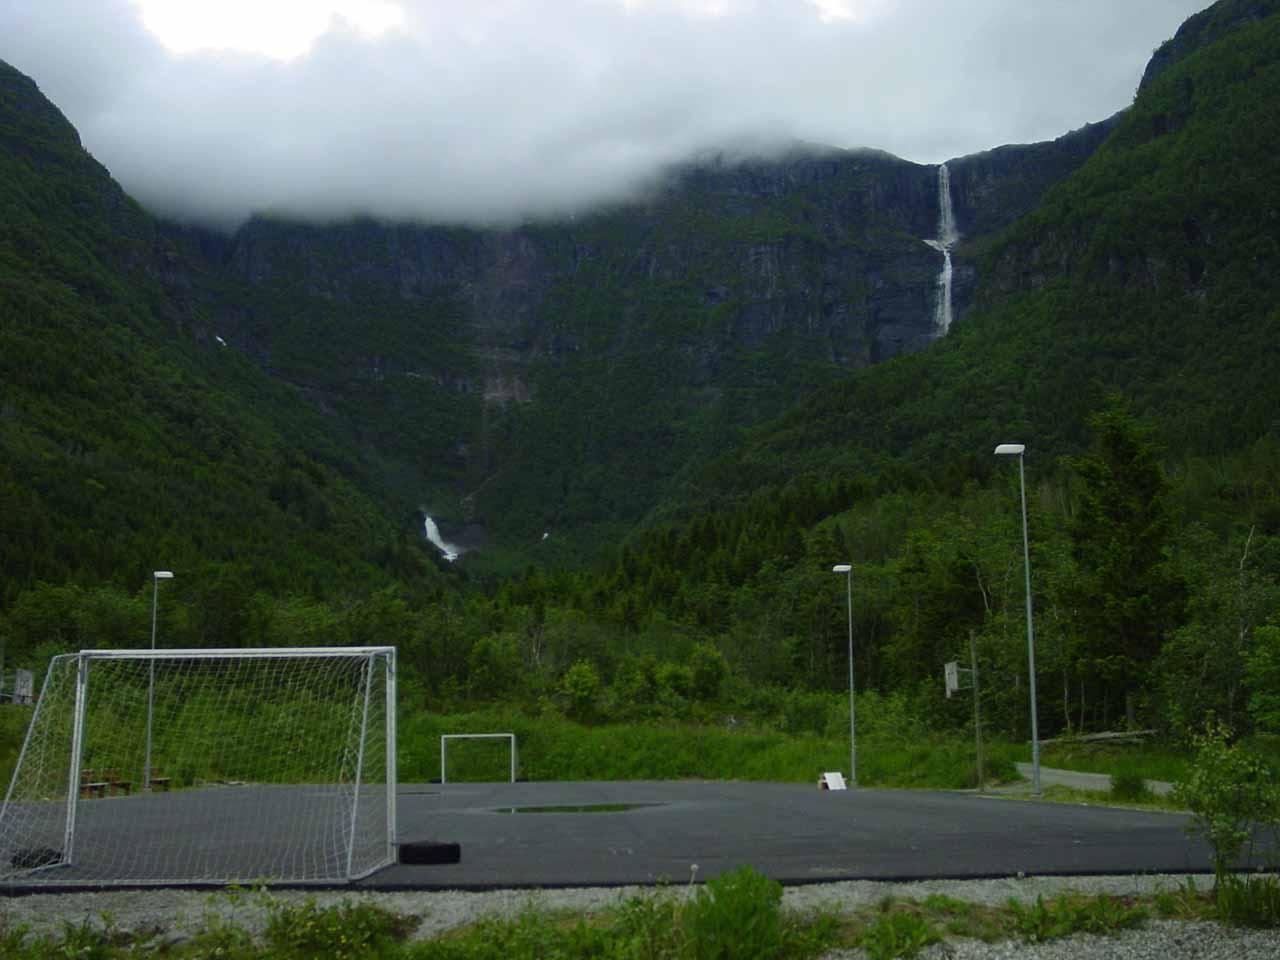 View of both Skrikjofossen (right) and Opofossen (left) seen from behind a field belonging to what I think was the school in Elvedalen